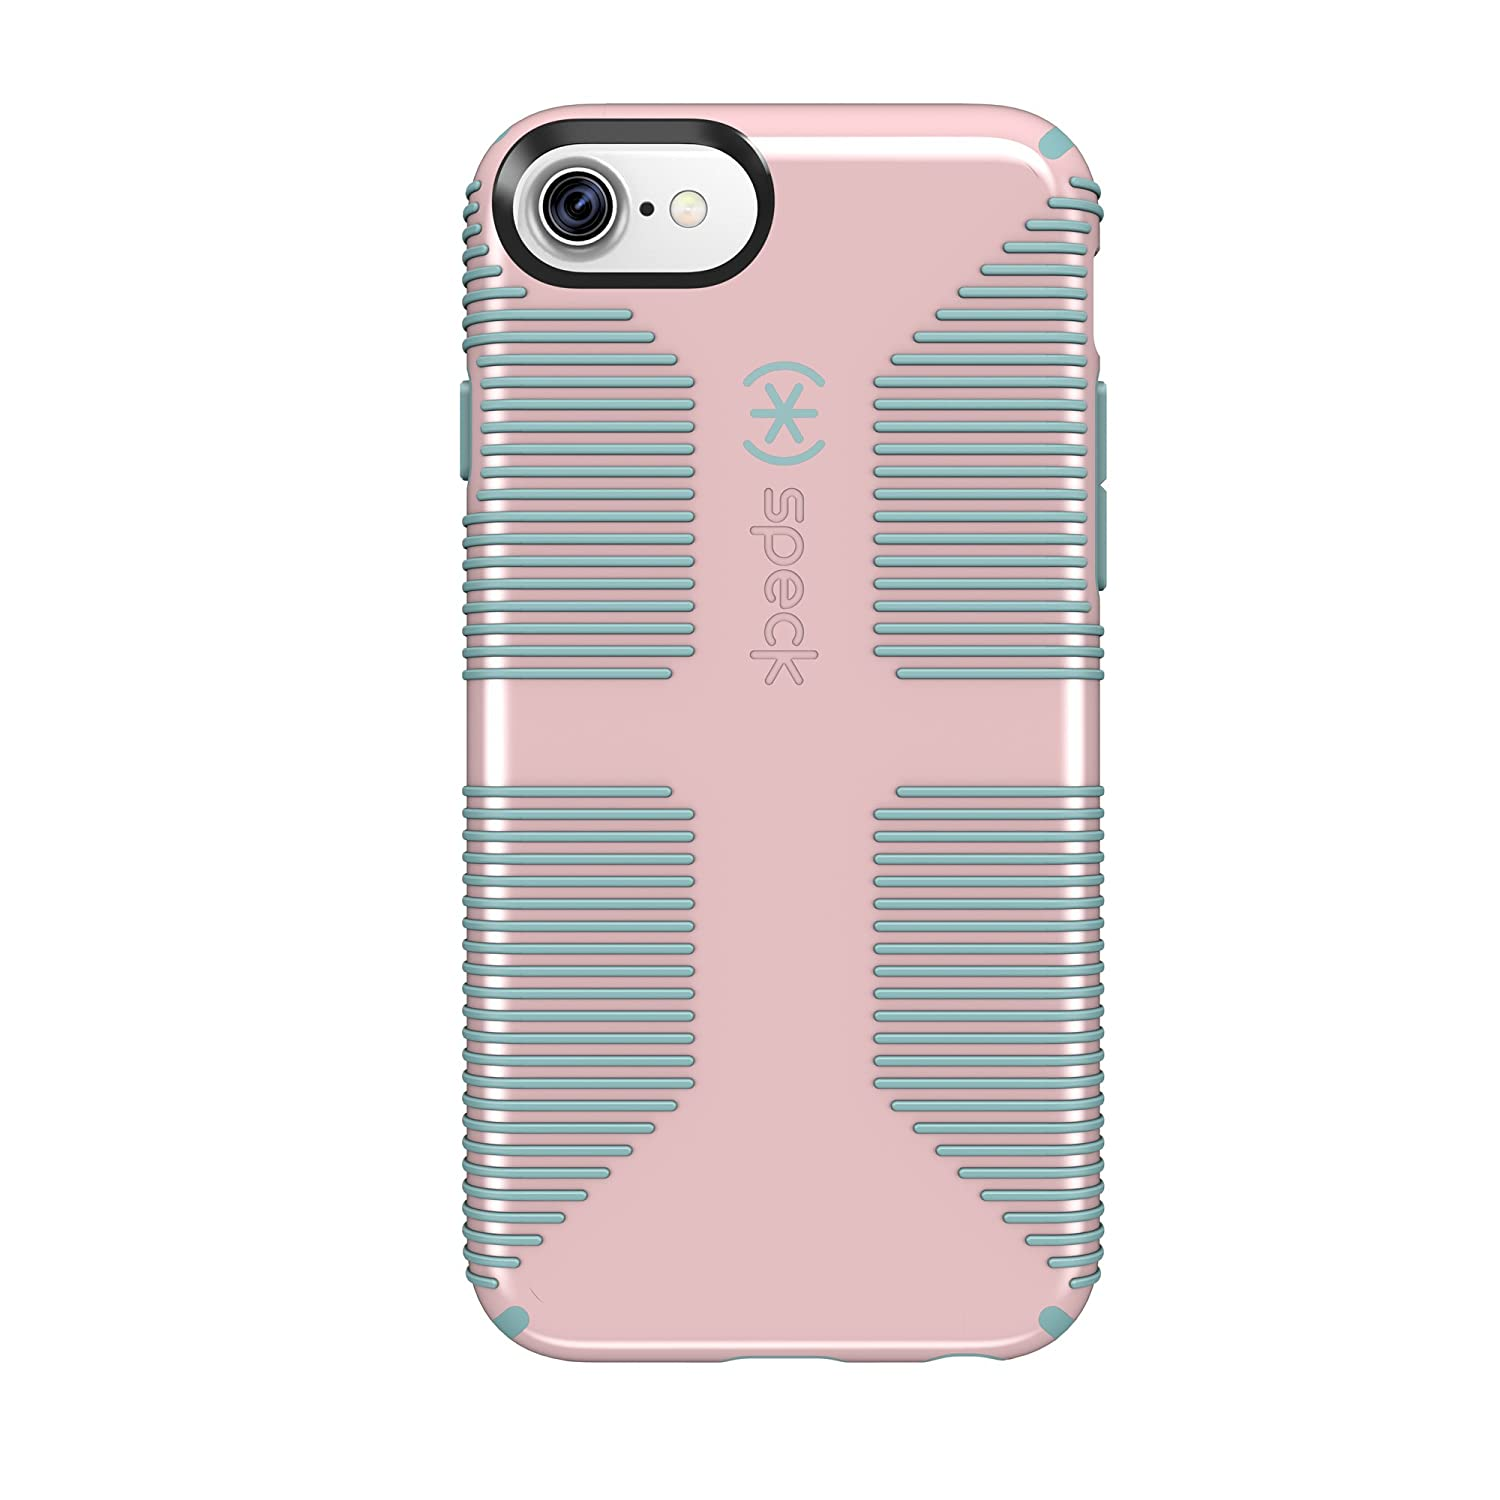 hot sale online 5f7a7 d3c20 Speck Products CandyShell Grip Cell Phone Case for iPhone 7/6S/6 - Quartz  Pink/River Blue